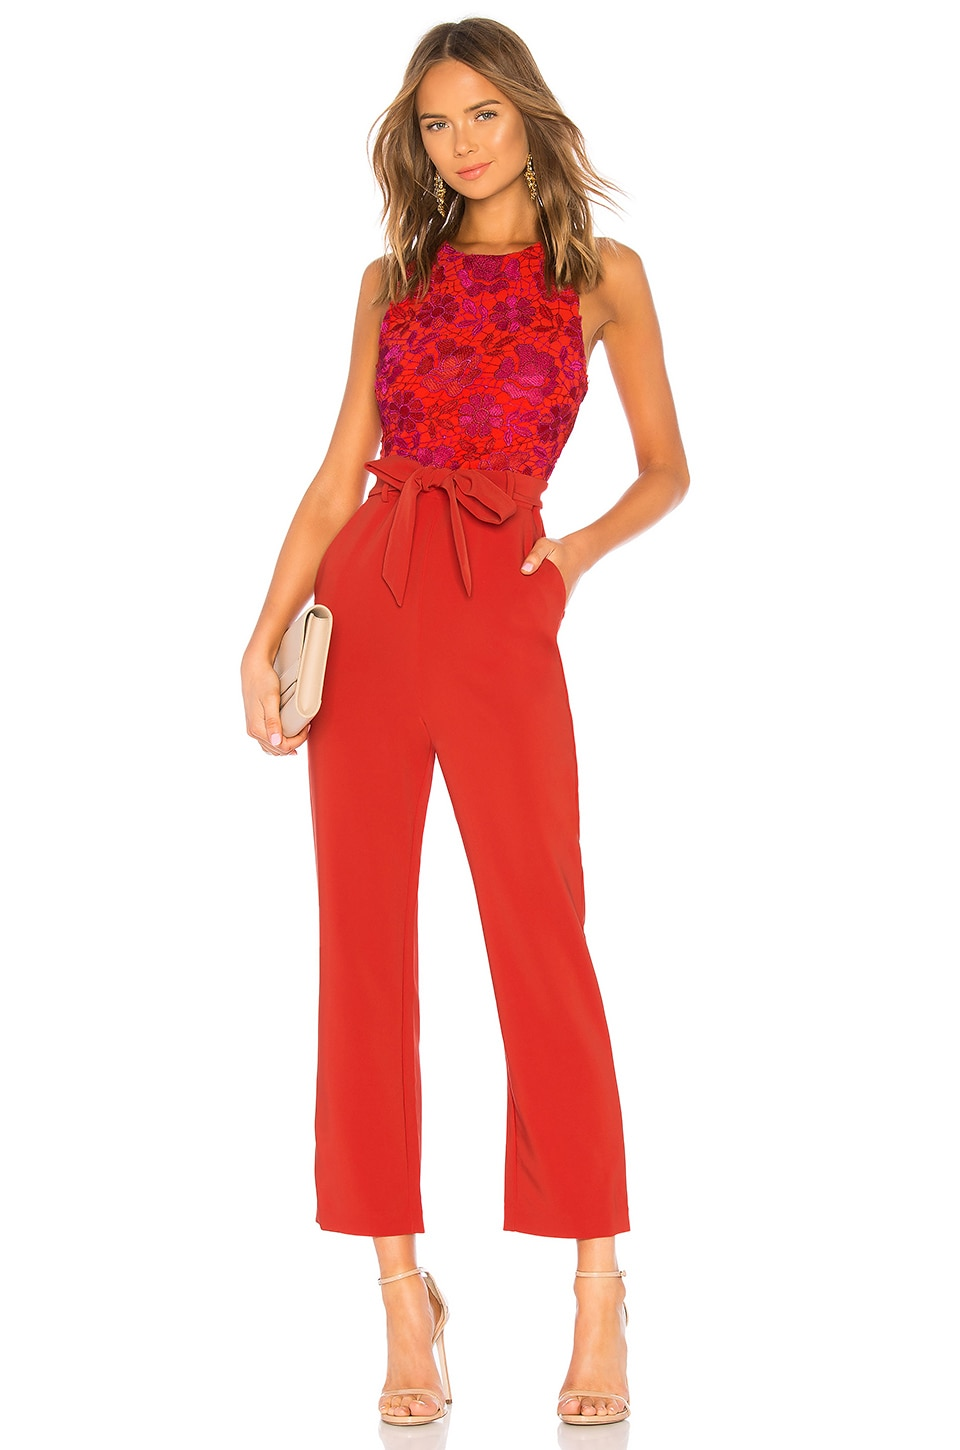 Lovers + Friends Gardanome Jumpsuit in Magenta & Red